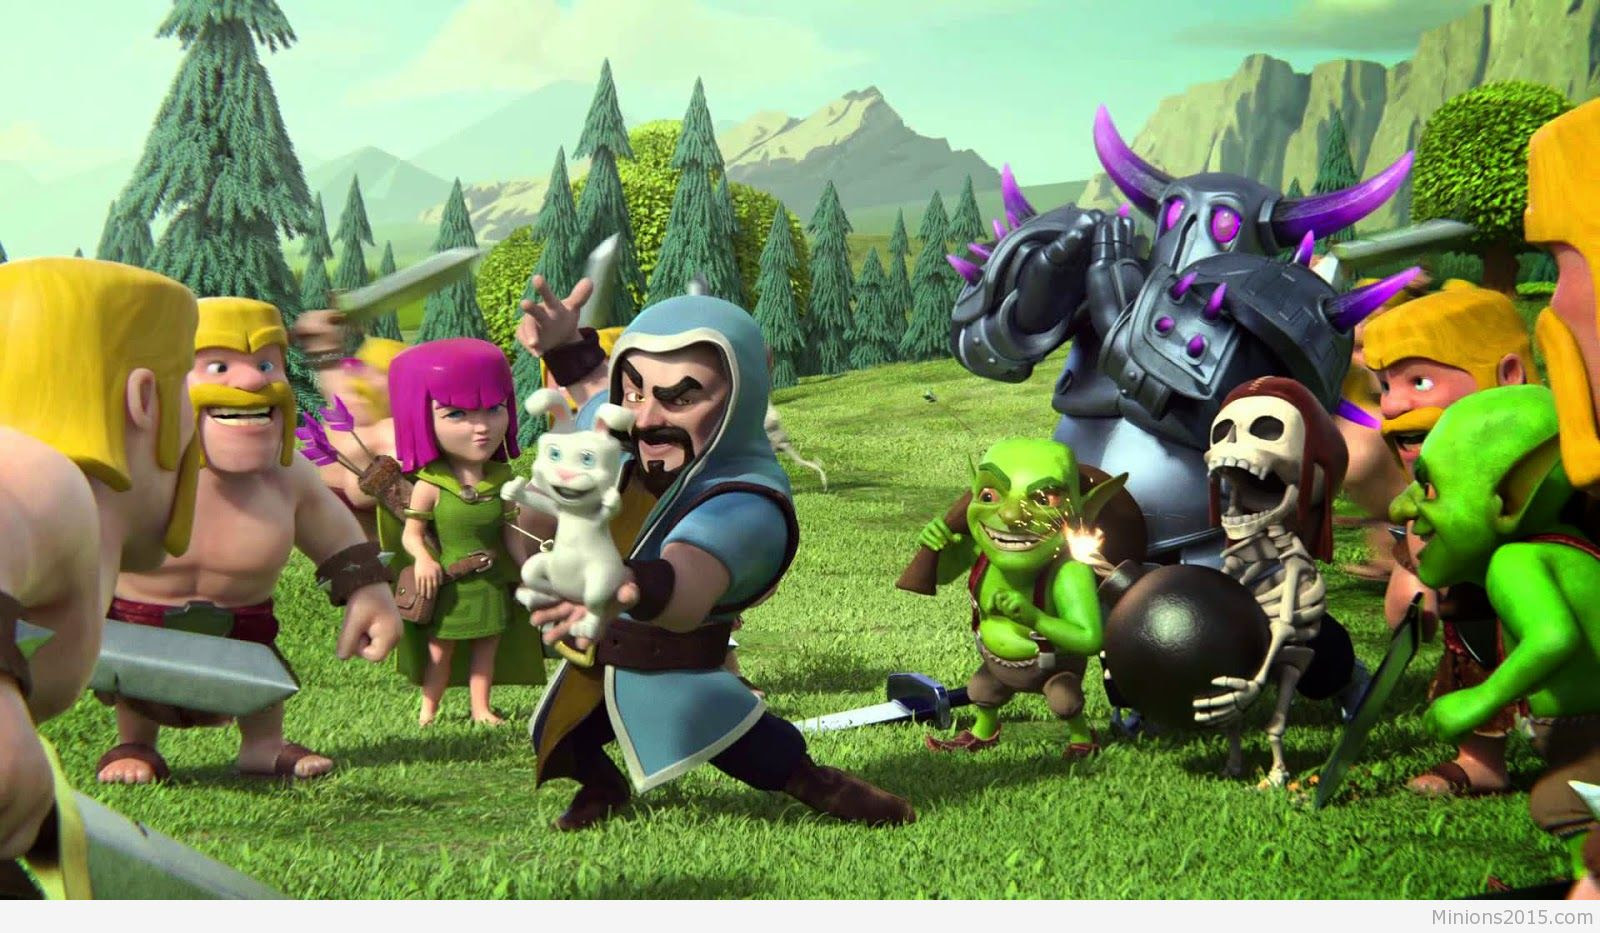 Download Clash Clans Wallpaper Hd 1080p Pc